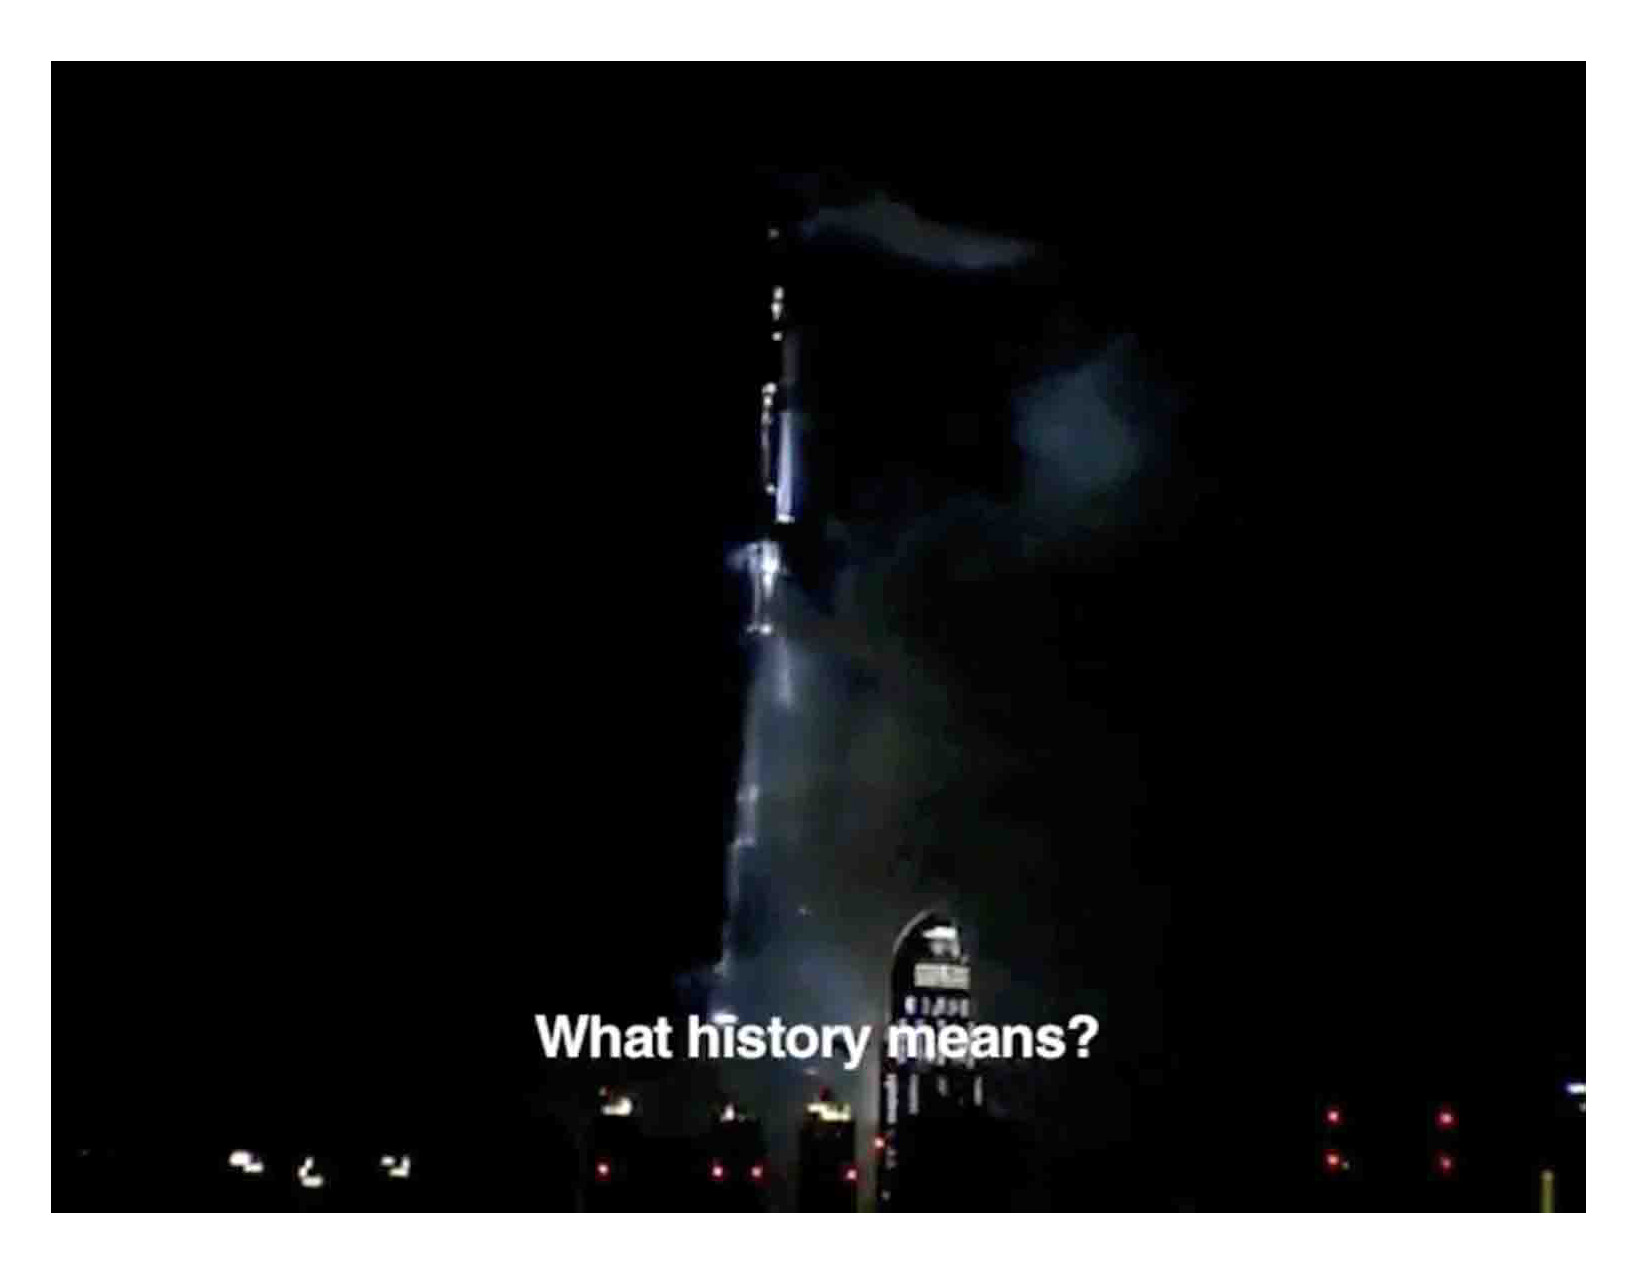 Alessandro Sambini, A bombed tower grasps our gaze again, 2011, still di video